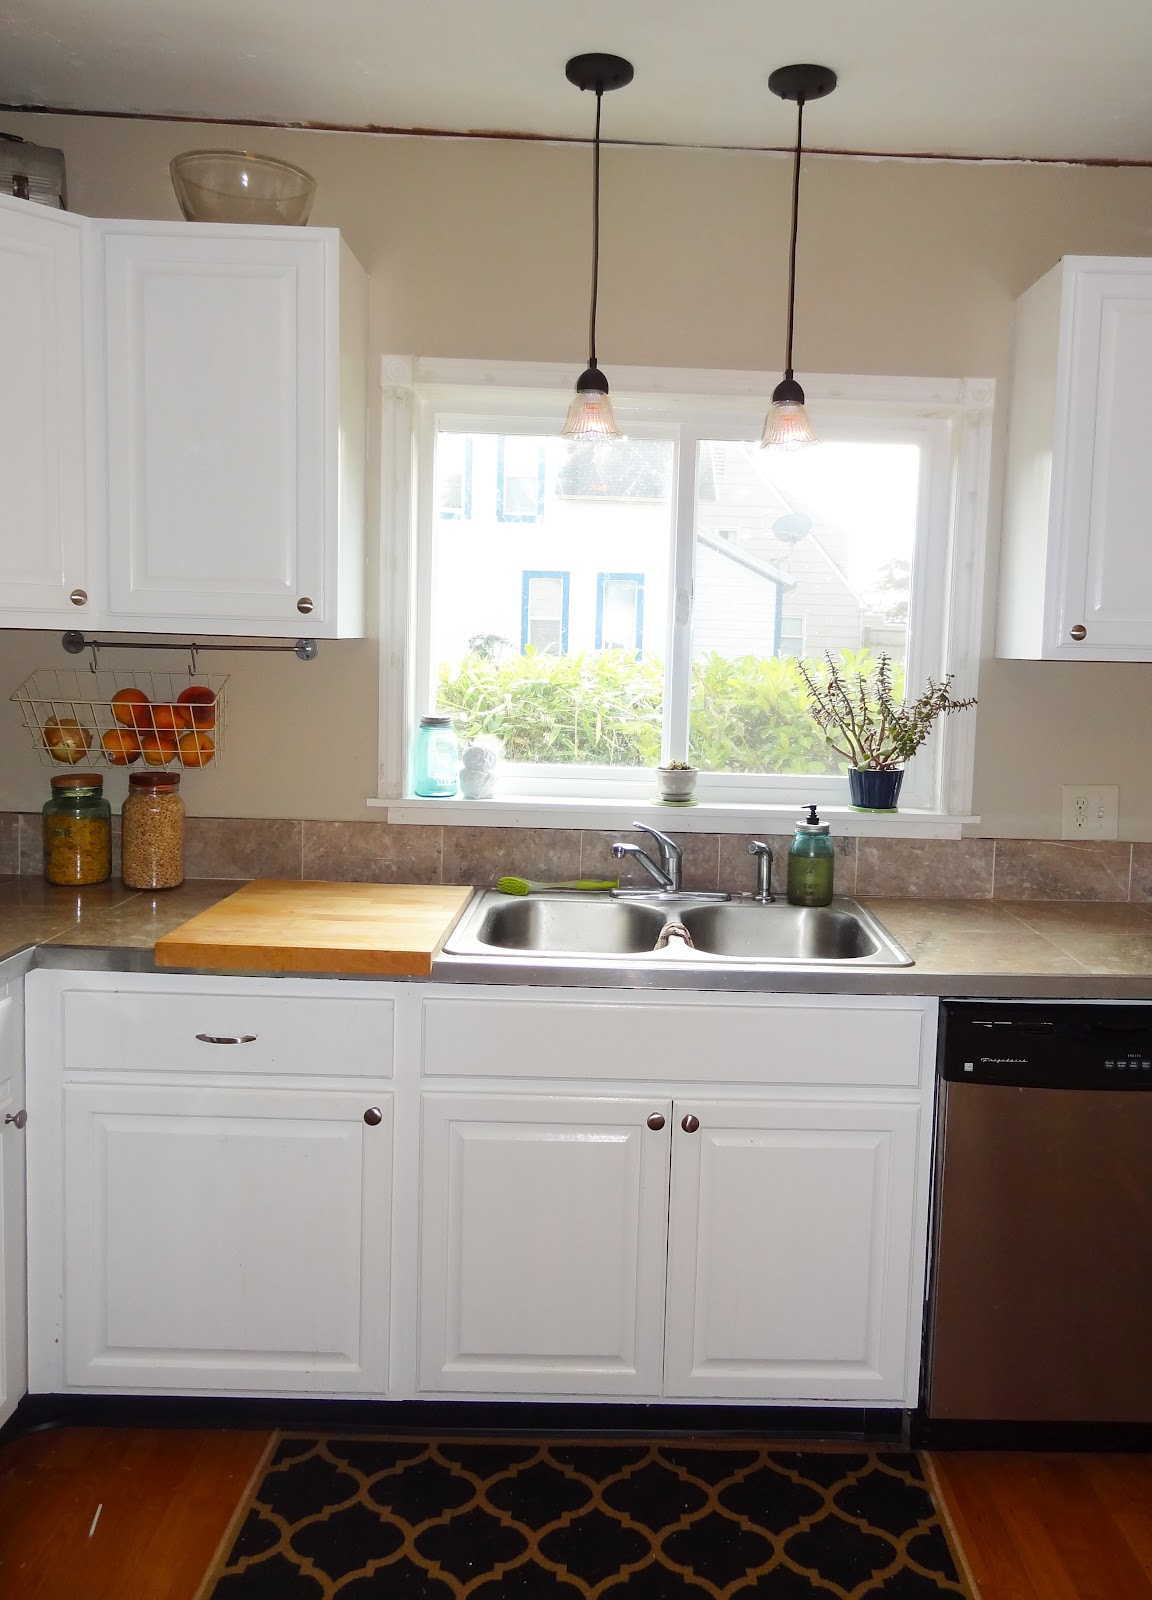 kitchen sink pendant light how much does a remodel cost diy update your lighting on the cheap revamp